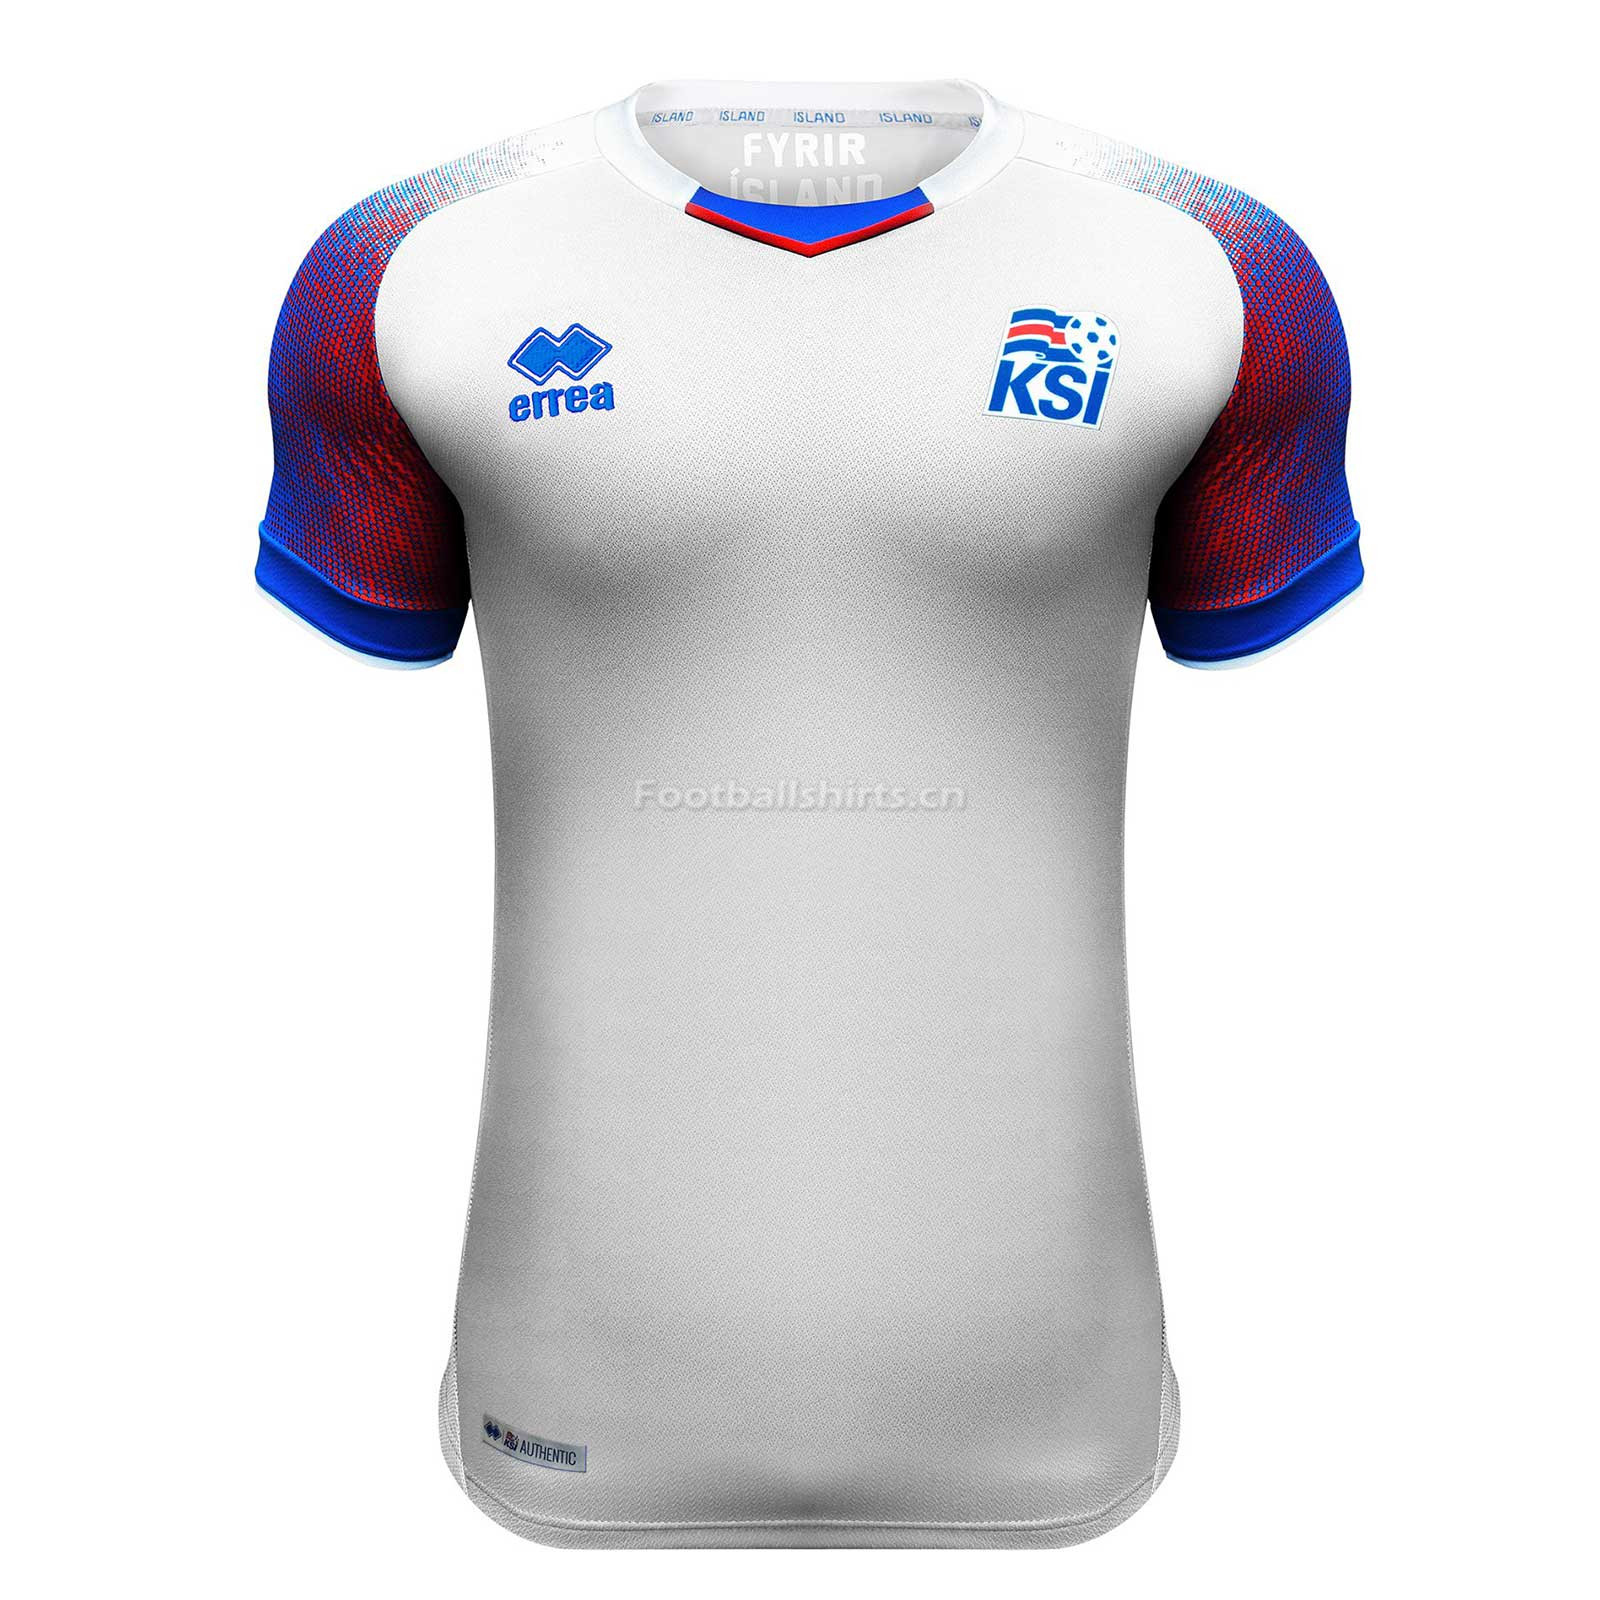 Iceland 2018 FIFA World Cup Away Soccer Jersey White